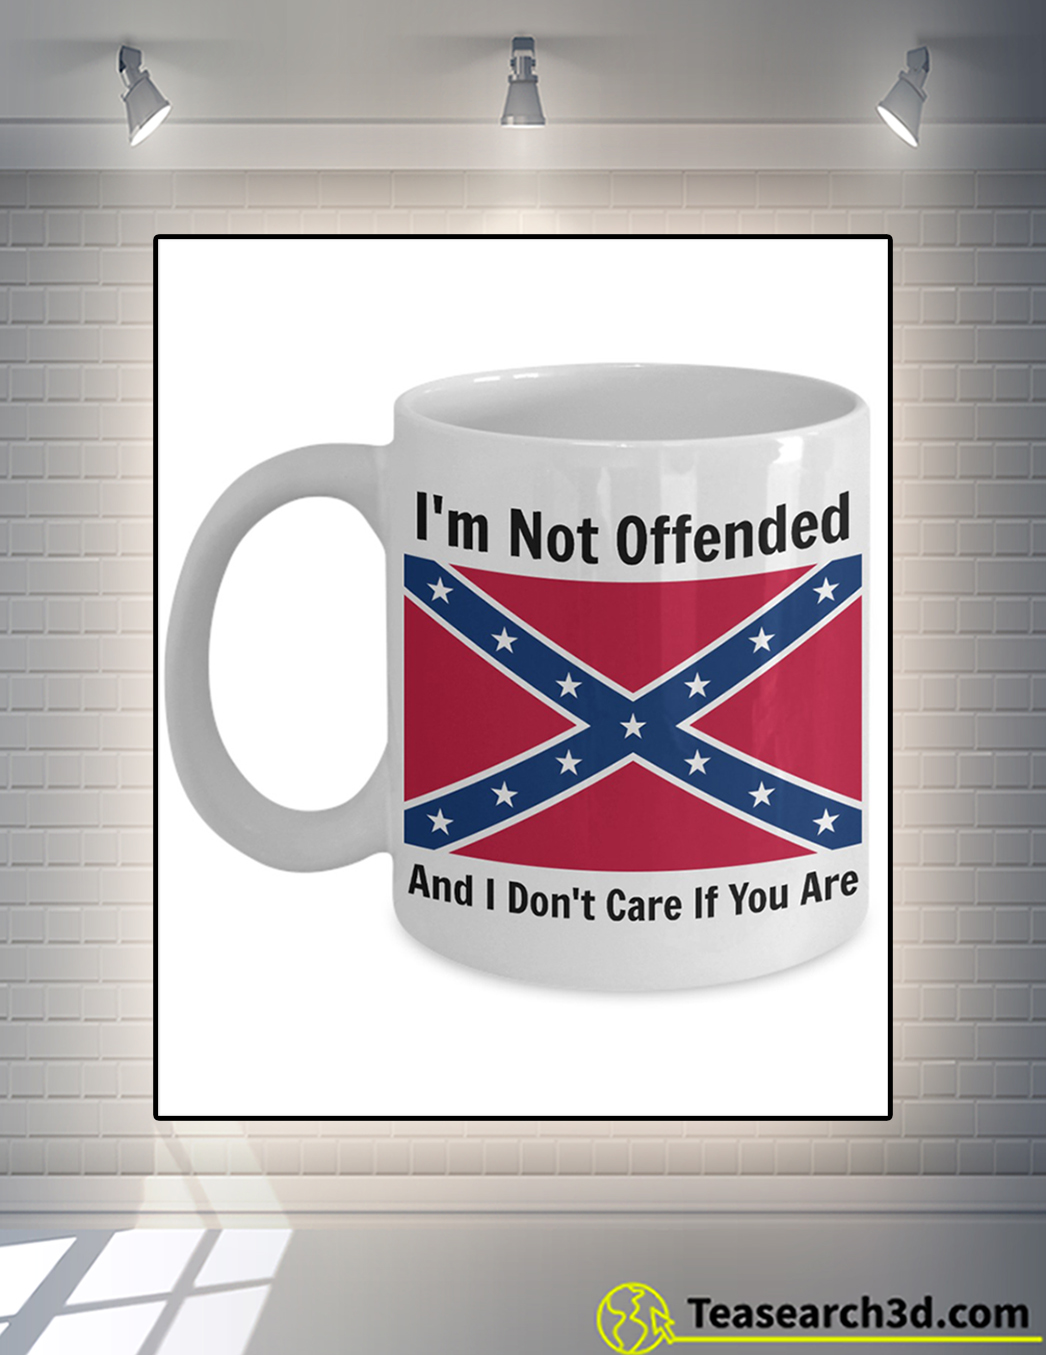 I not offended and I don't care if you are mug front